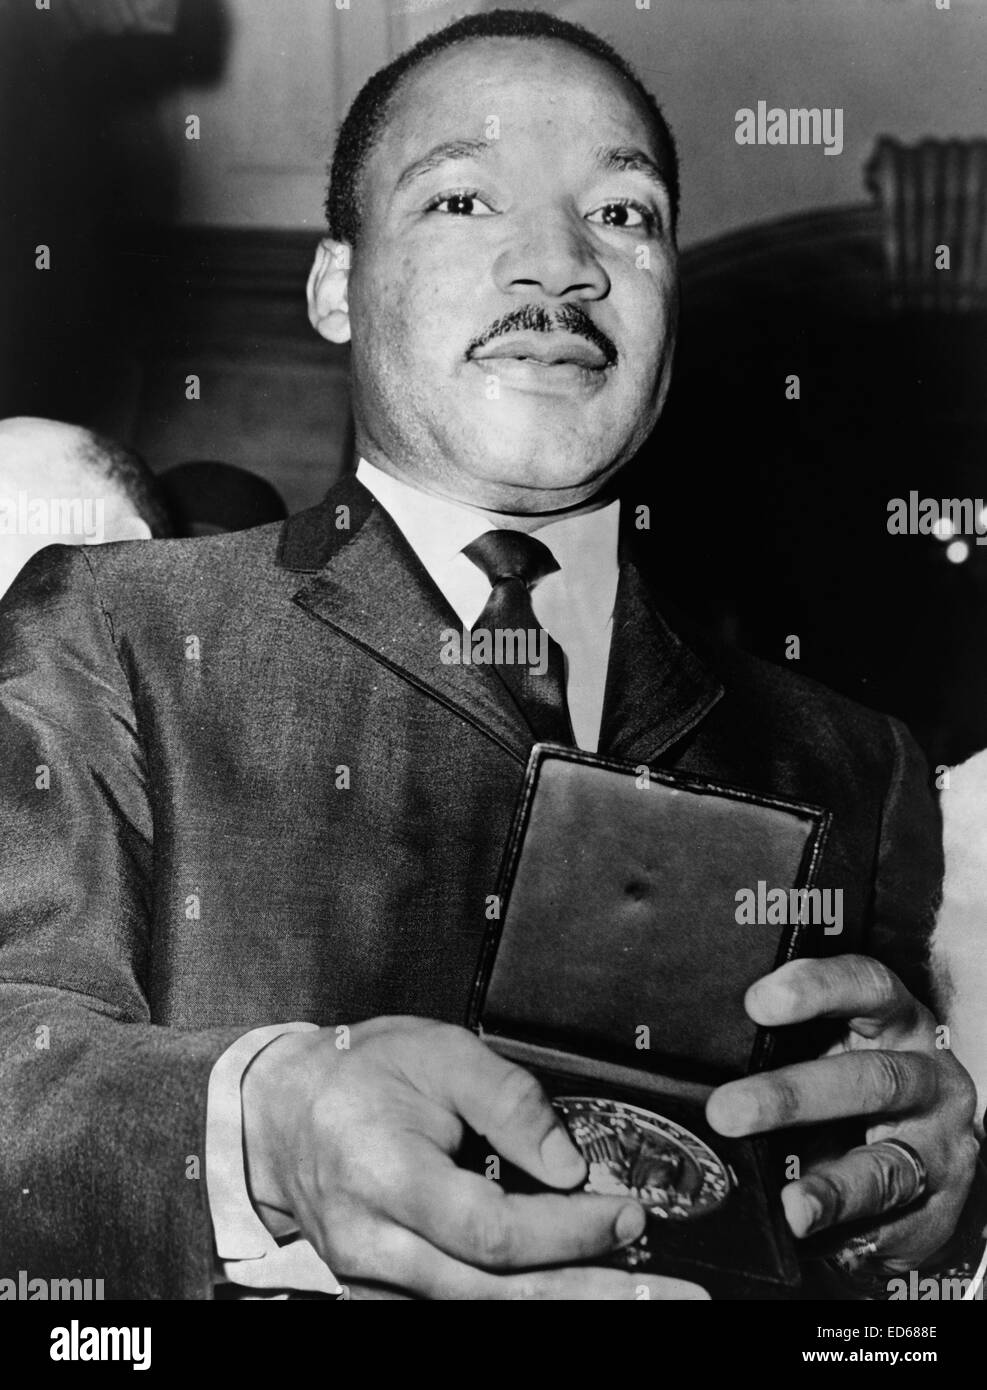 Dr. Martin Luther King showing his medallion received from Mayor Wagner, 1964 - Stock Image